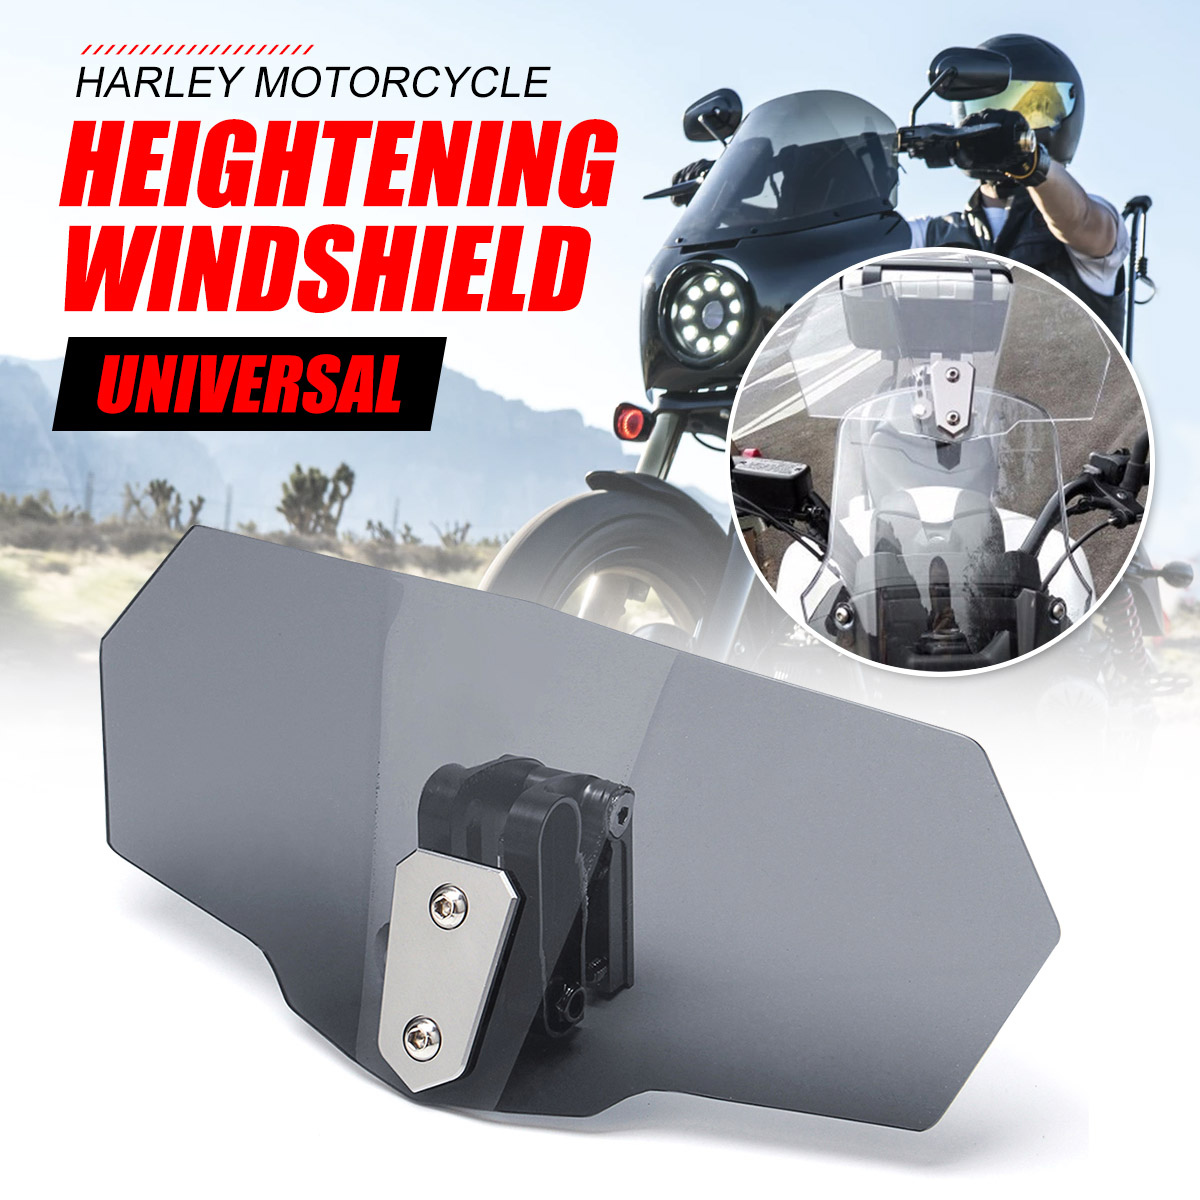 Unversal CNC Aluminum Motorcycle Adjustable Clip windshield Extension Spoiler Windscreen Screen Deflector Spoiler wind deflectorUnversal CNC Aluminum Motorcycle Adjustable Clip windshield Extension Spoiler Windscreen Screen Deflector Spoiler wind deflector